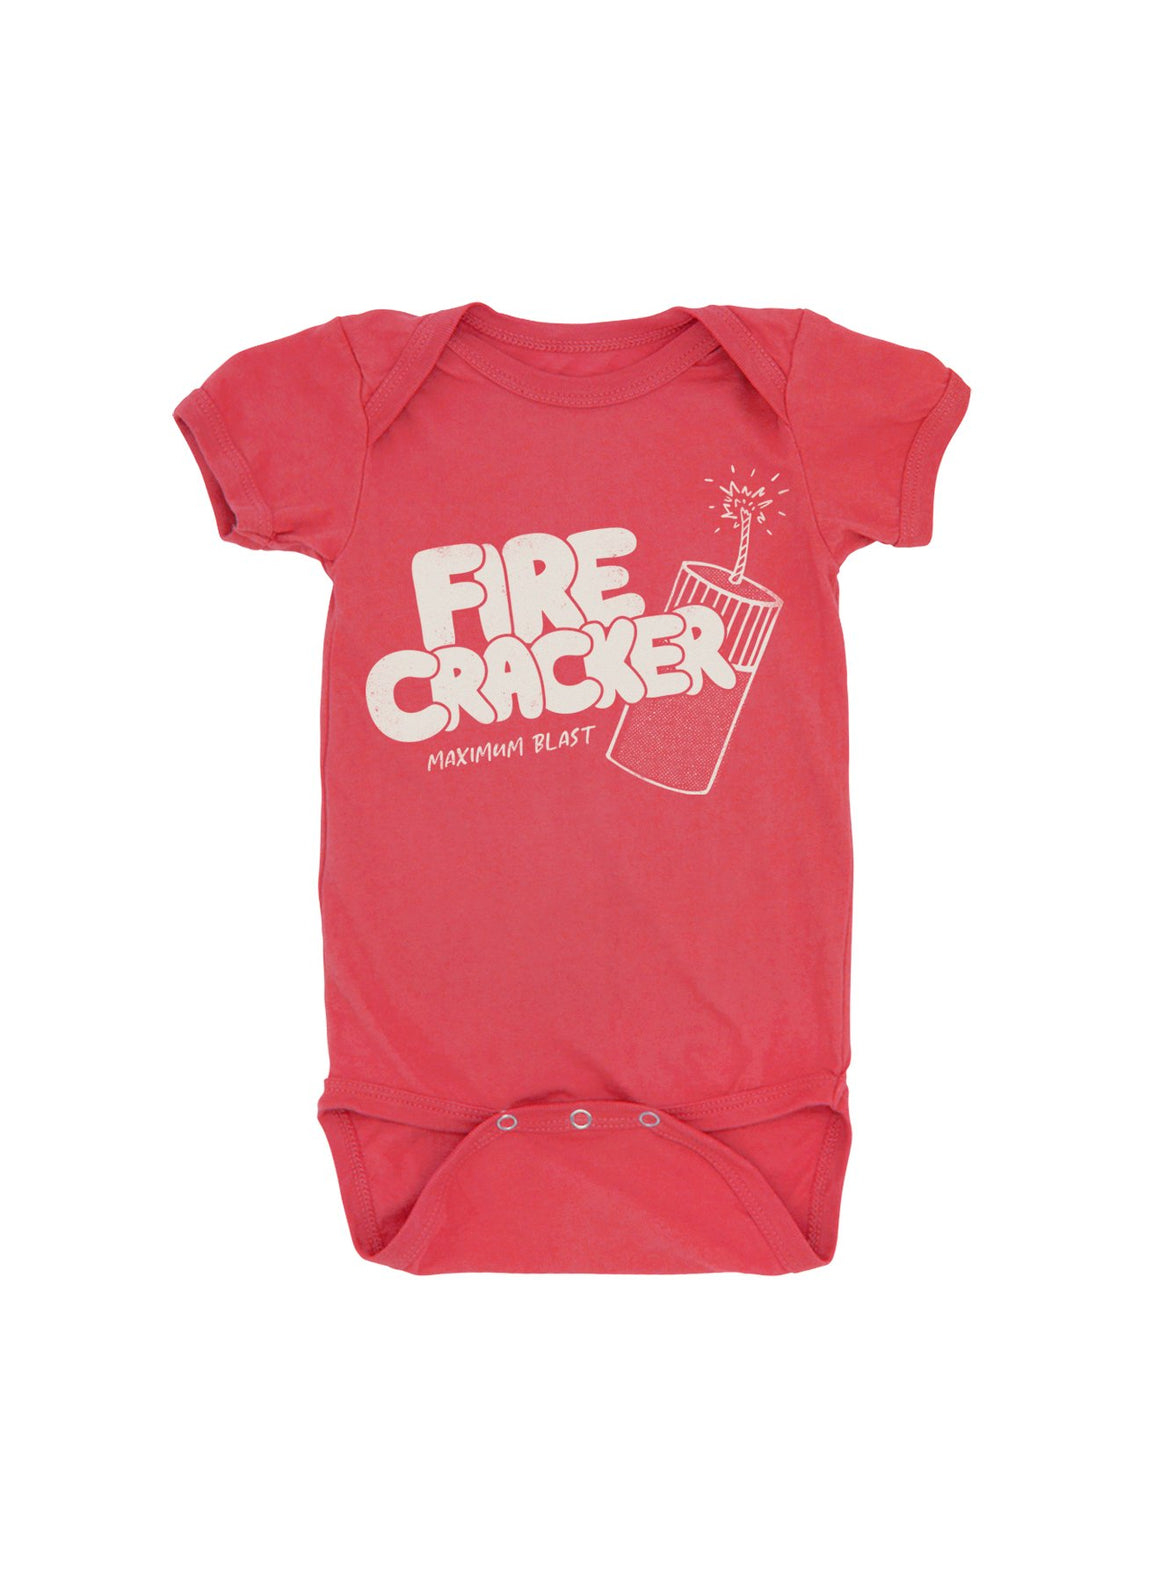 Feather 4 Arrow | 4th of July 'Firecracker' Onesie